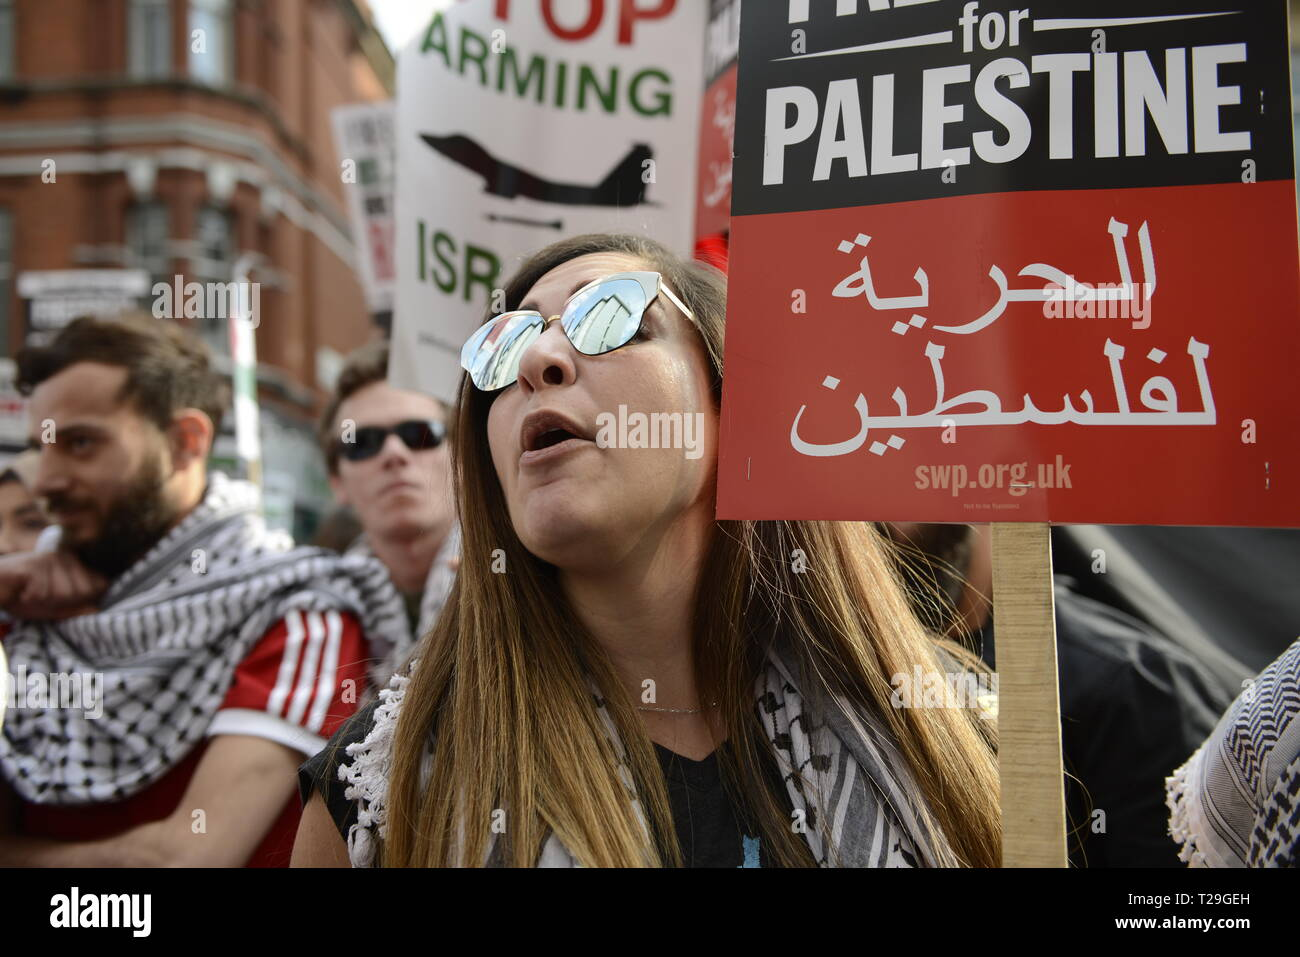 A protester is seen chanting slogans while holding a placard during the Exist, Resist, Return Rally for Palestine in London. People gather outside the Israeli embassy in London to demonstrate against the Israeli government, and to demand respect for Palestinians' fundamental rights to exist, resist and return. Palestinians are calling for global protests to support their right to come back to their villages. Rally was organized by Palestine Solidarity Campaign, Stop the War Coalition, Palestinian Forum in Britain, Friends of Al- Aqsa, and Muslim Association of Britain. Stock Photo